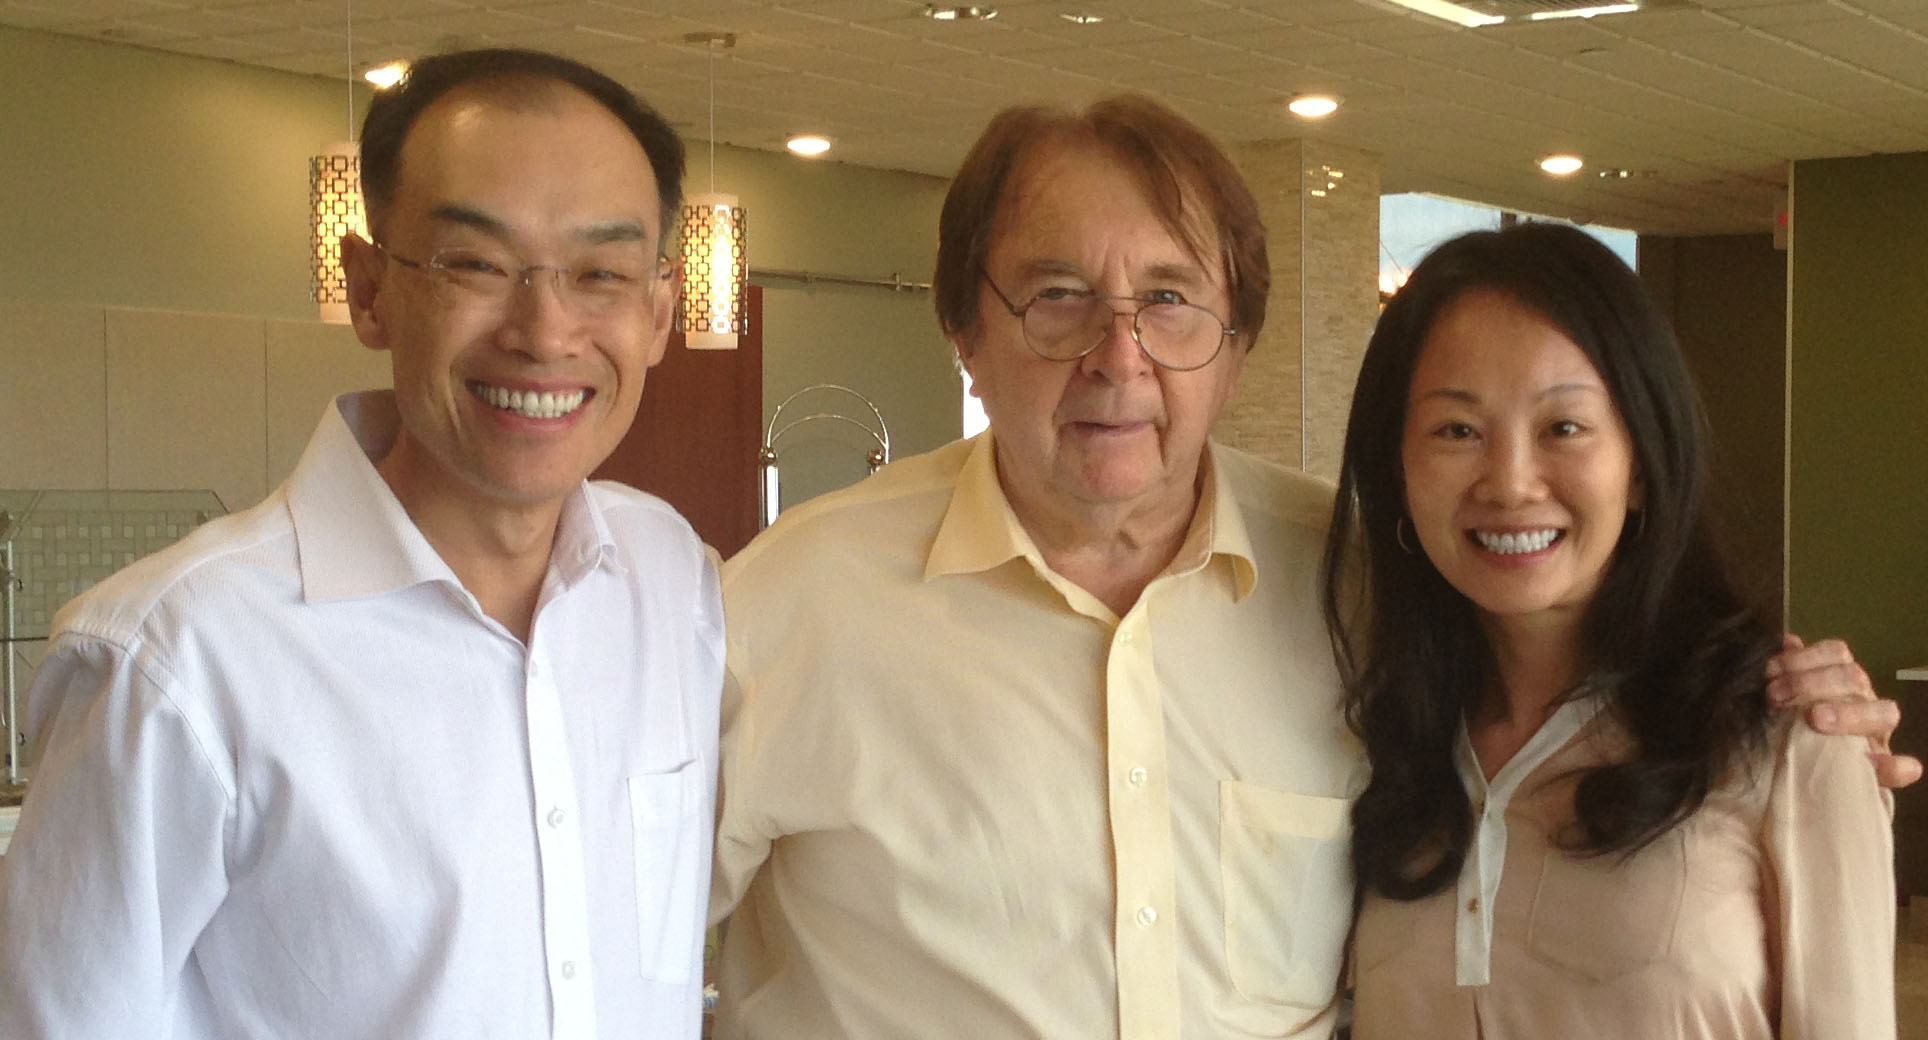 Biologist Tim Hall poses with his former graduate student Eric Xu '93 and his wife, Alice Xu